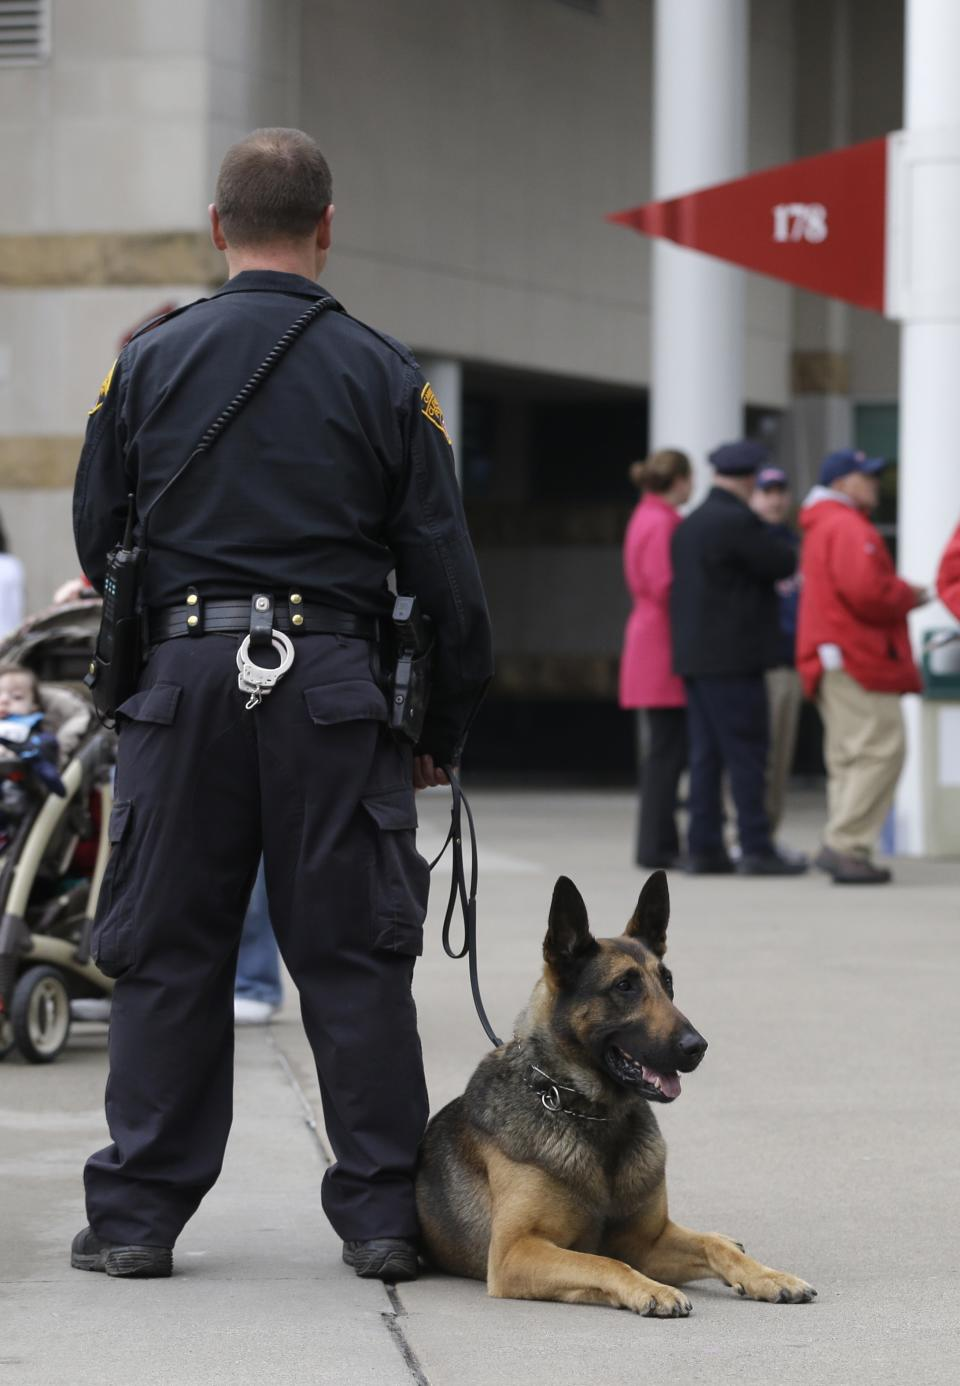 A Cleveland police K-9 unit patrols inside a gate at Progressive Field before a baseball game between the Boston Red Sox and Cleveland Indians Tuesday, April 16, 2013, in Cleveland. (AP Photo/Mark Duncan)